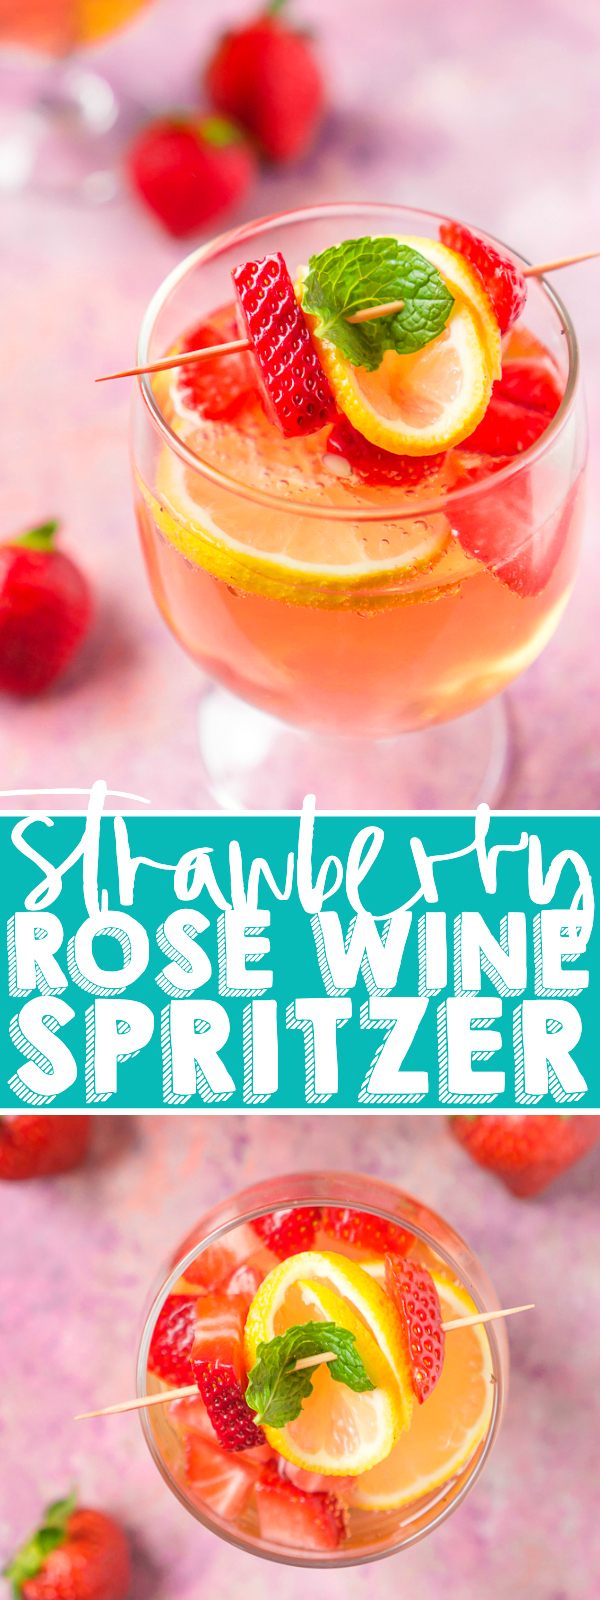 Strawberry Lemon Rosé Spritzer is a pink cocktail you are going to love! It's super easy and pretty drink that works great as both a party cocktail and a fun at home drink on a warm summer night! | THE LOVE NERDS #winecocktail #winespritzerrecipe #summercocktail